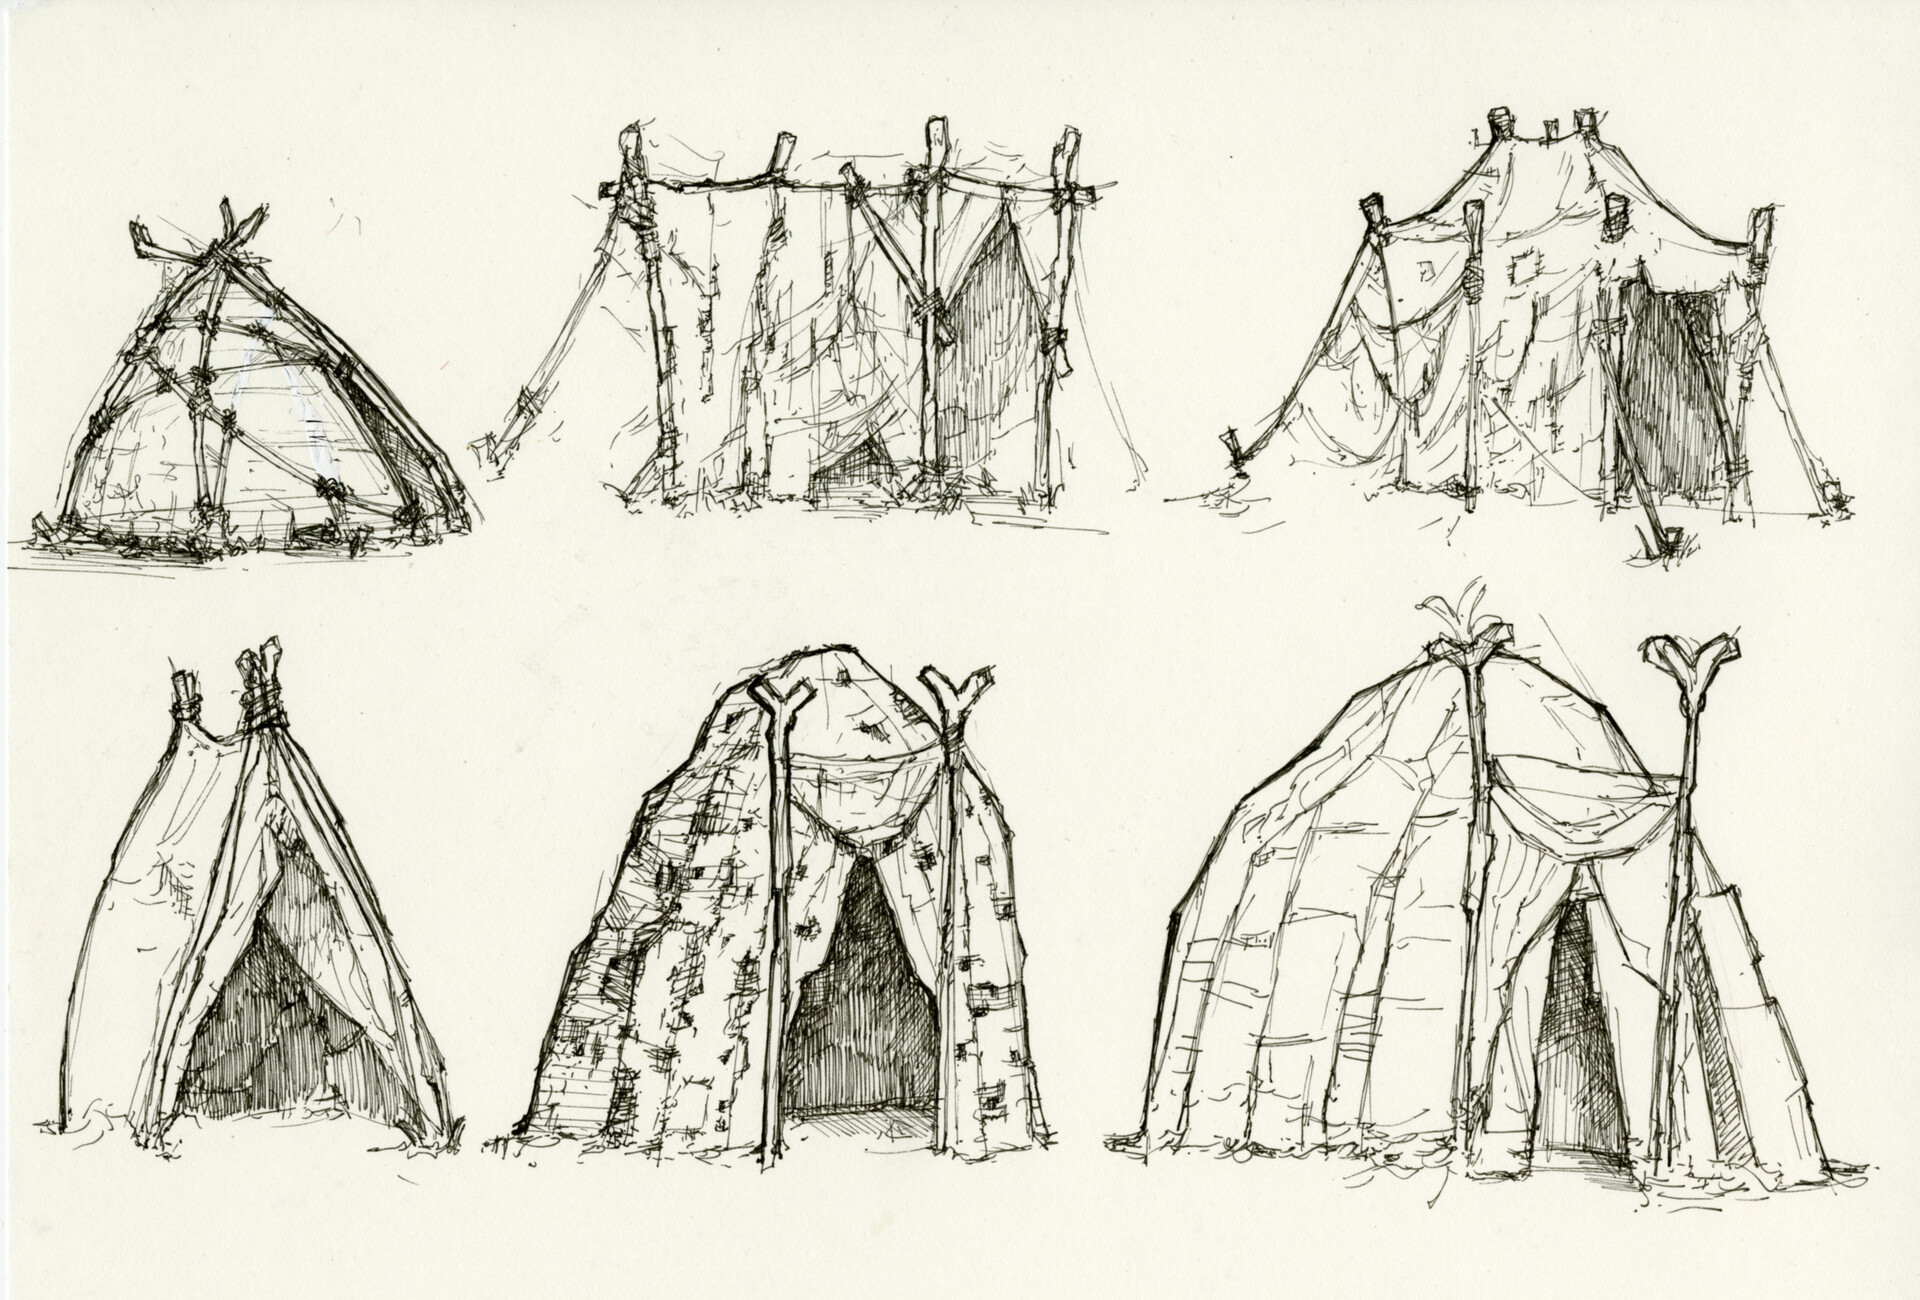 Tent ideations | Pen Sketch